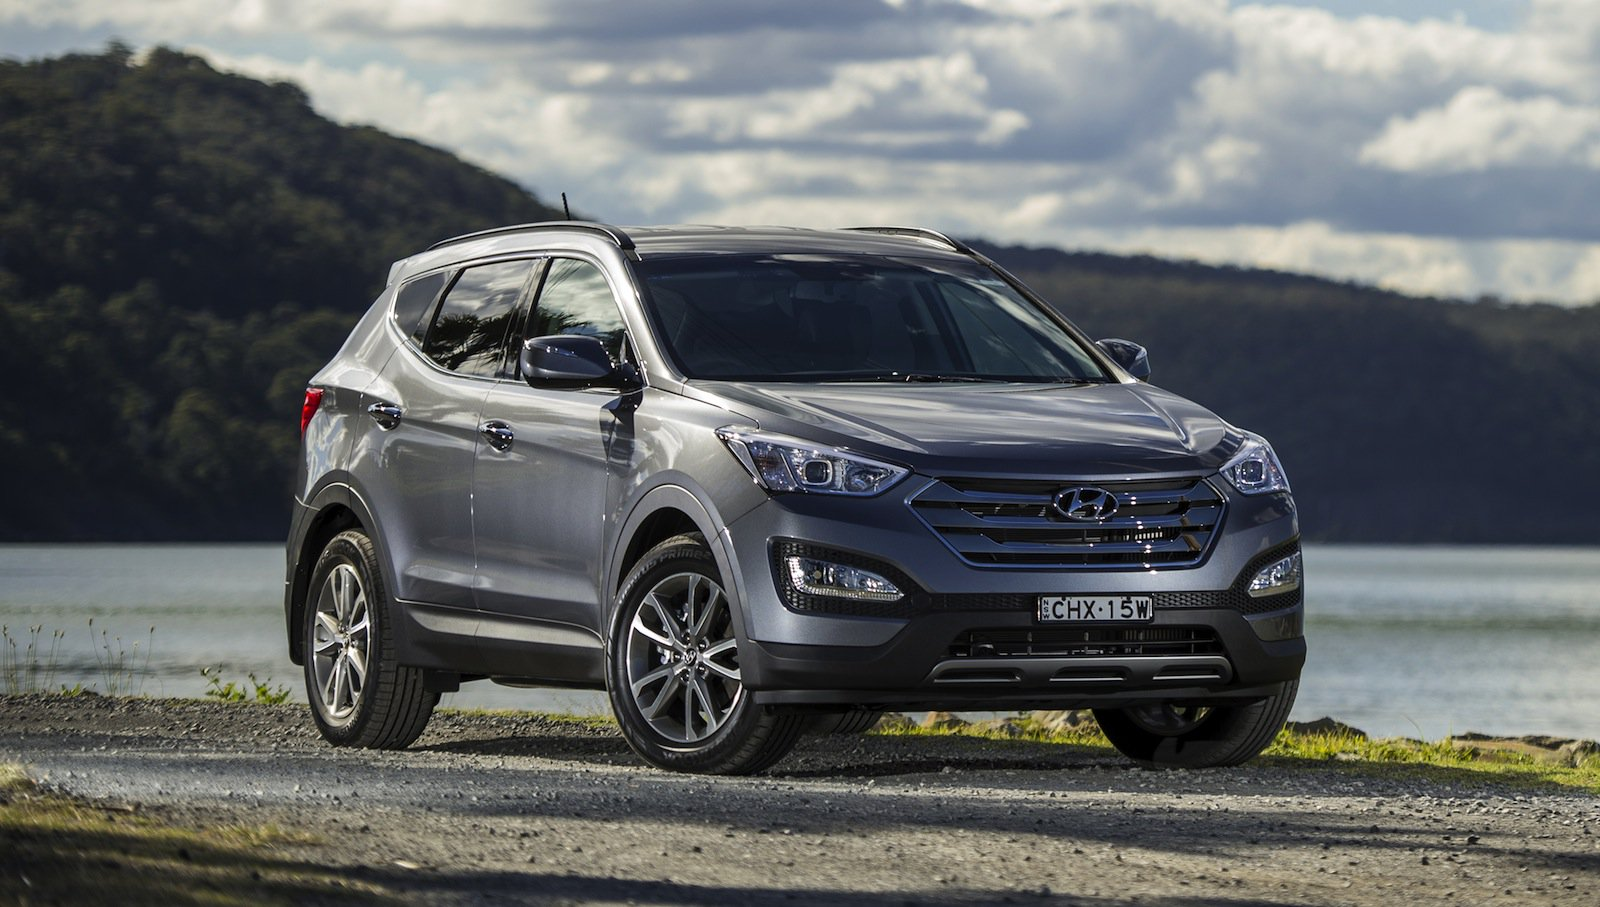 Hyundai Santa Fe Heavy Duty Towing Kit Boosts Down Ball Rate To 150kg Caradvice